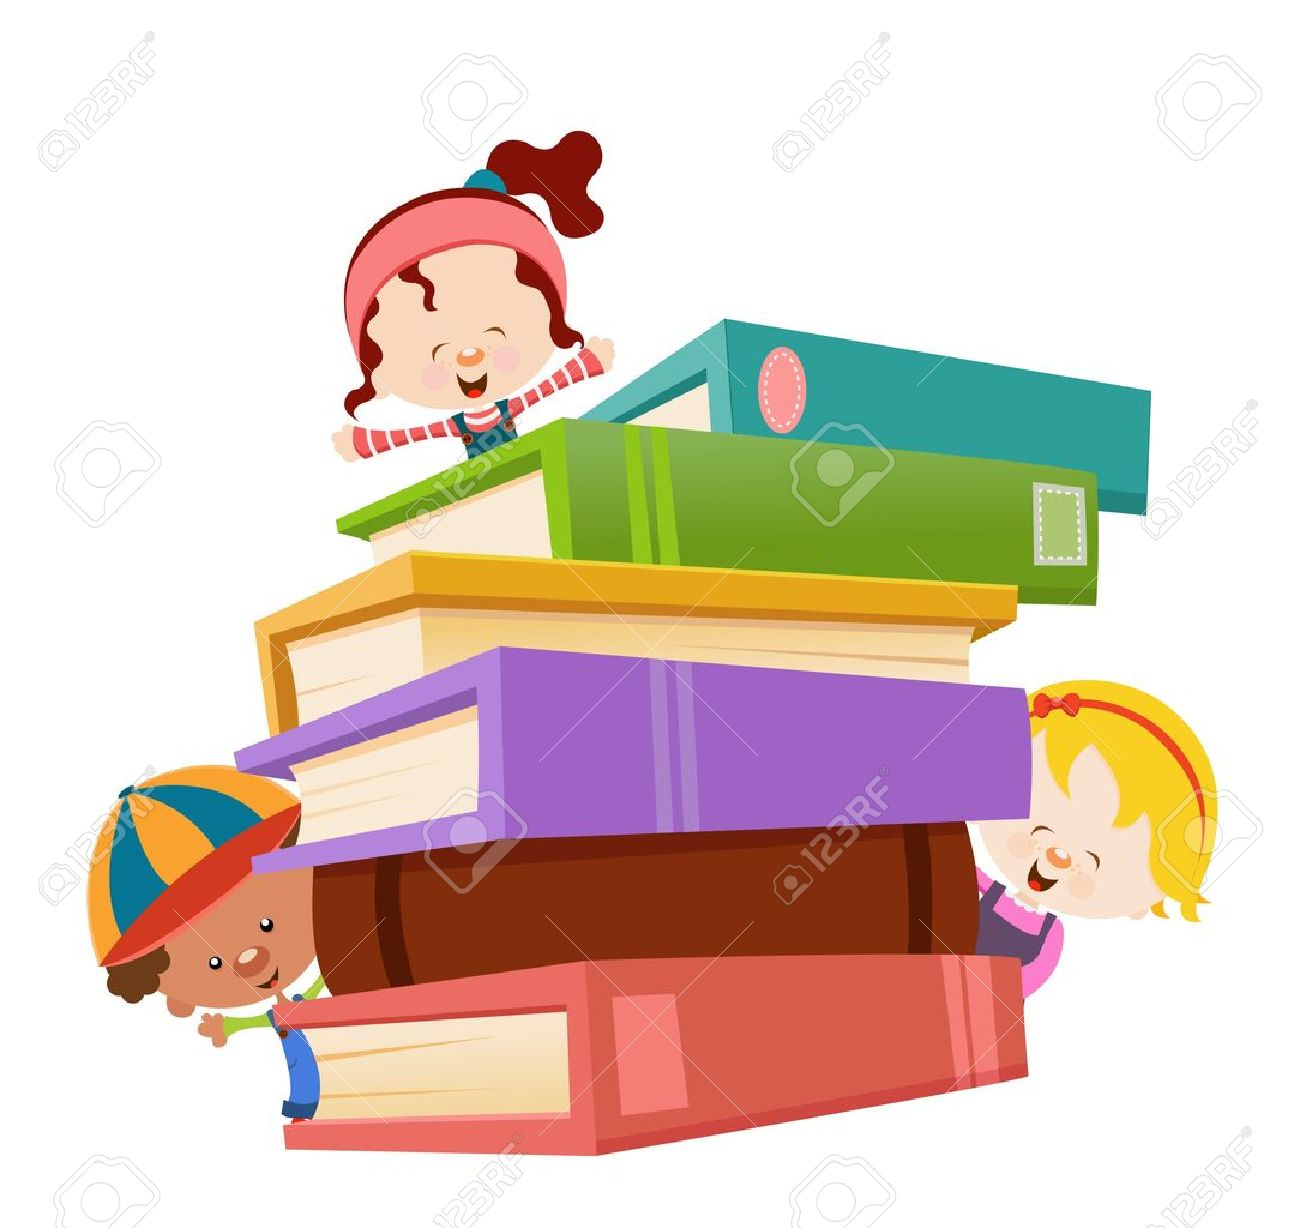 18 121 kids reading stock vector illustration and royalty free